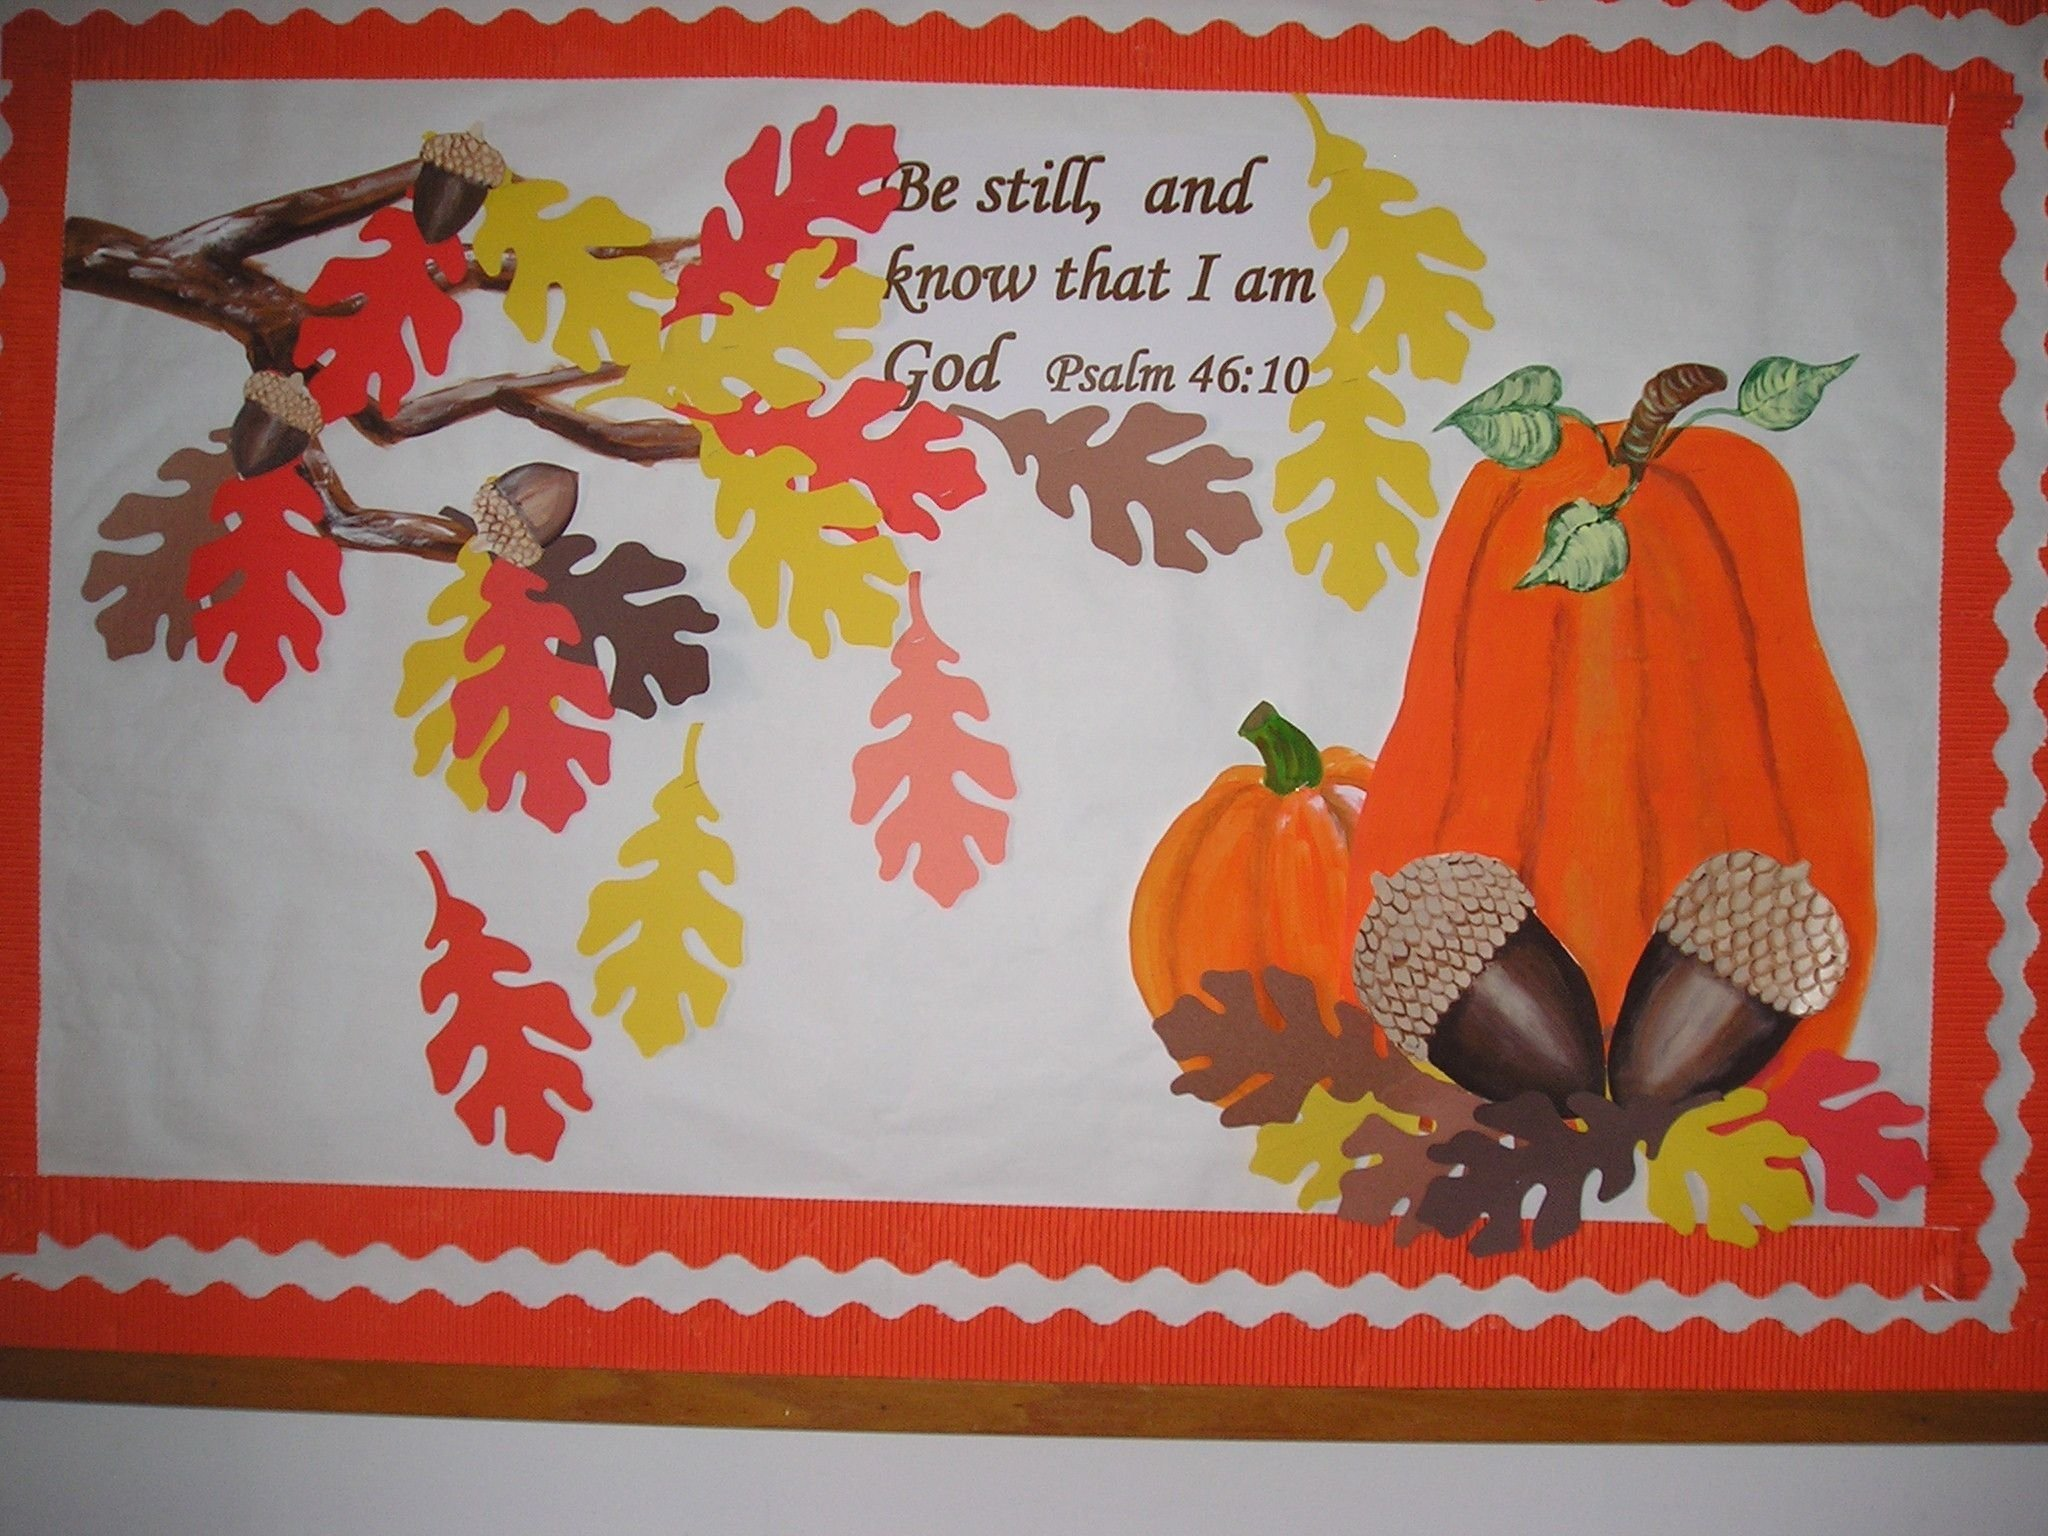 10 Unique Bulletin Board Ideas For Fall church bulletin board for fall church bulletin boards pinterest 3 2020